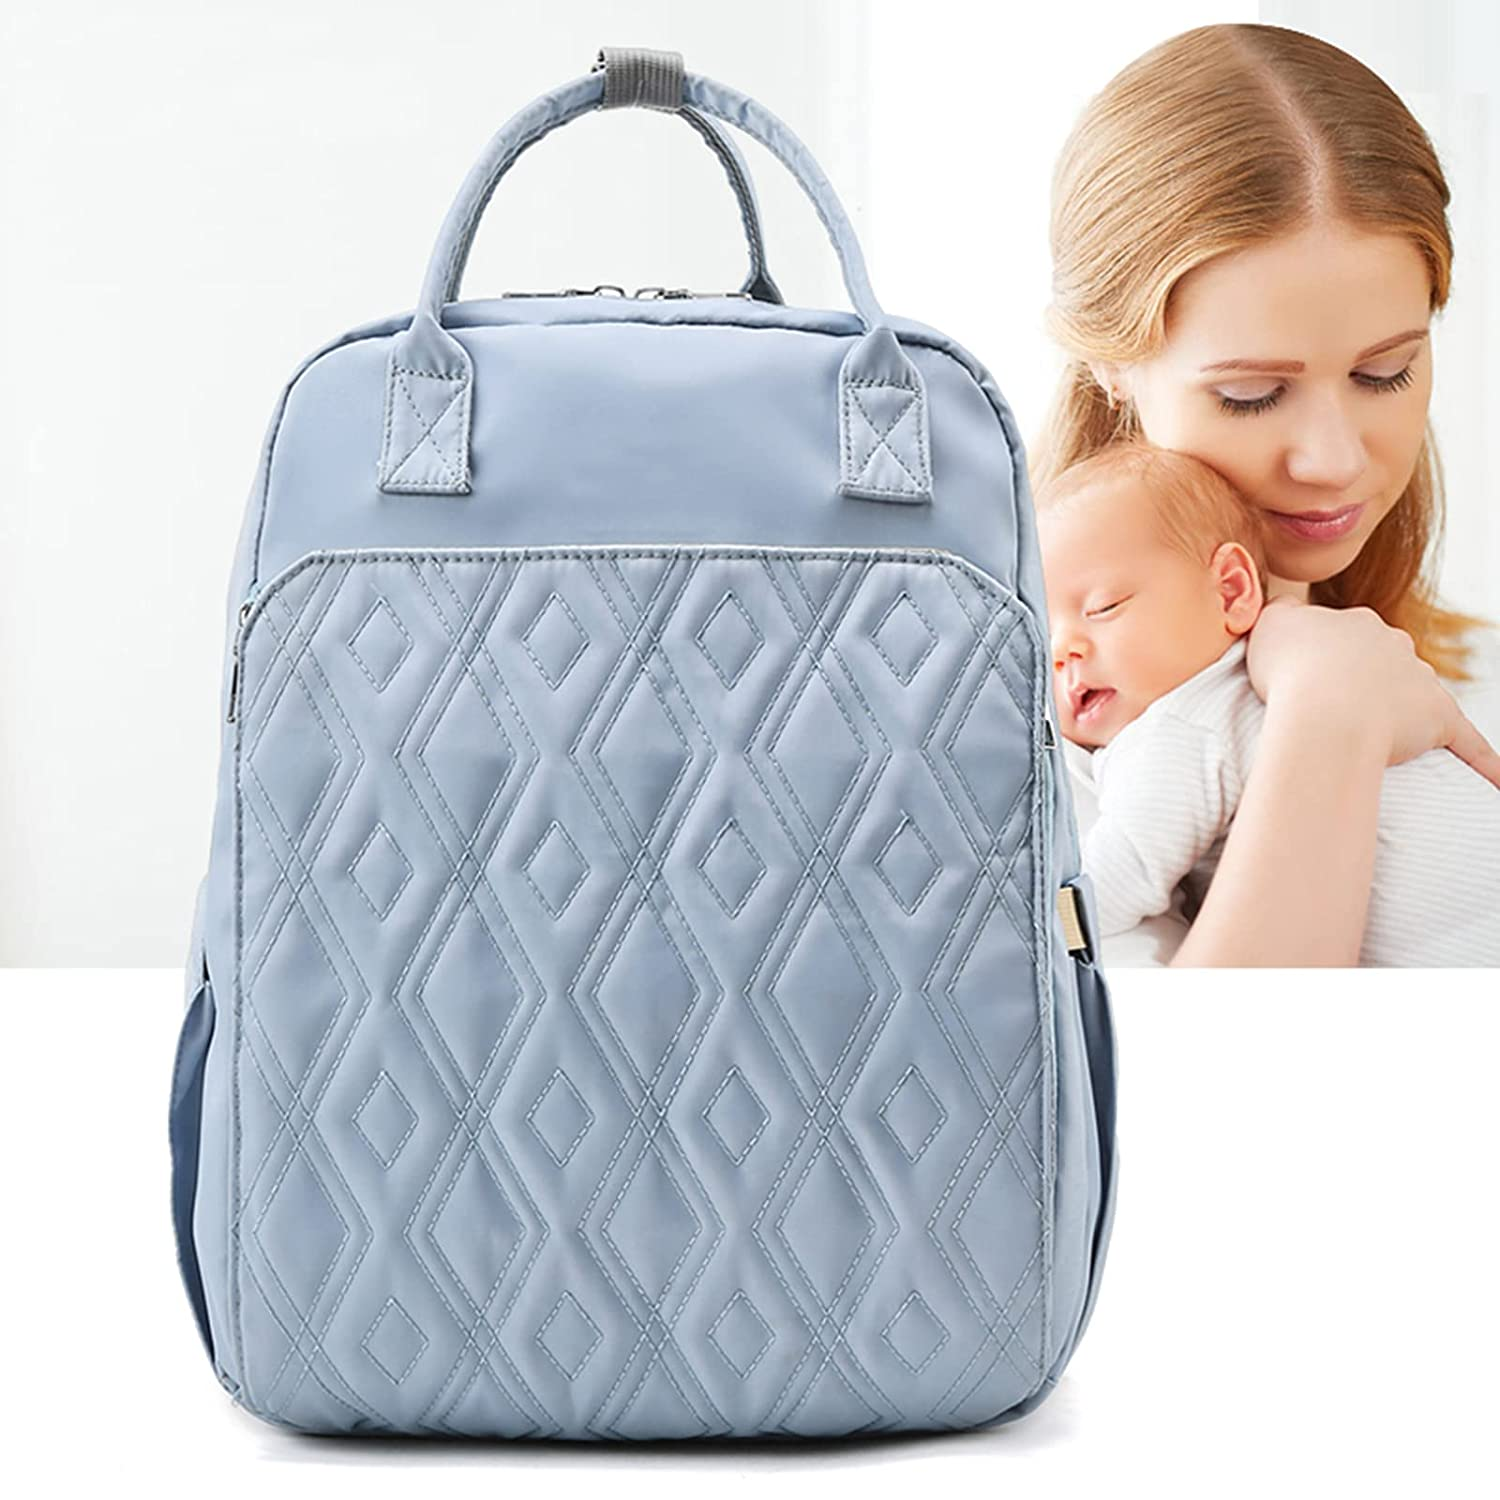 Diaper Bag Backpack with Diaper Changing Station, Multifunctional Travel Backpack for Maternity and Babies Out, Portable Nappy Bags, Boys&Girls,Large Capacity, Waterproof. Light Blue.